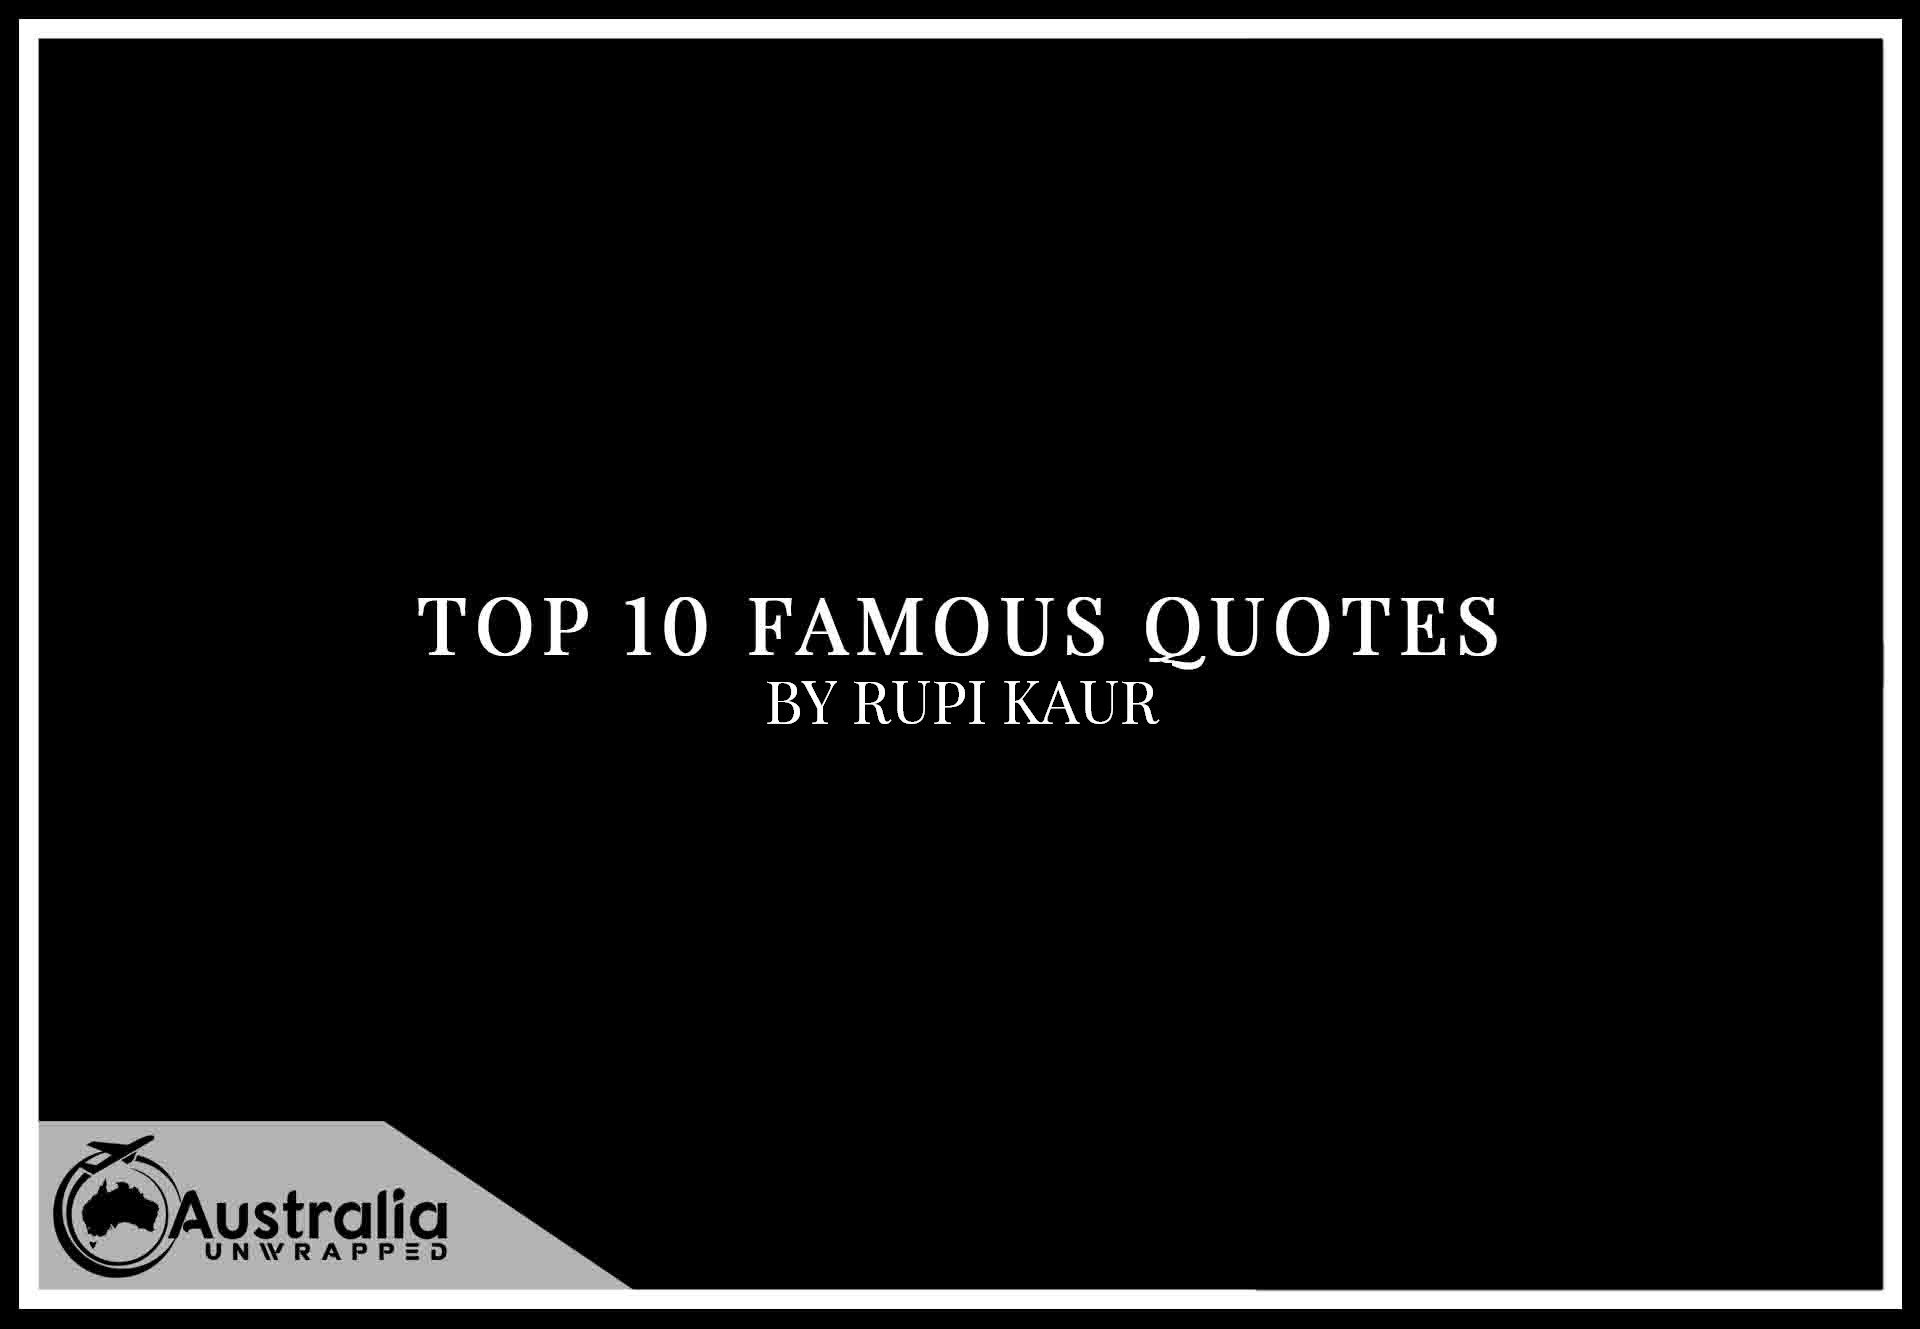 Top 10 Famous Quotes by Author Rupi Kaur